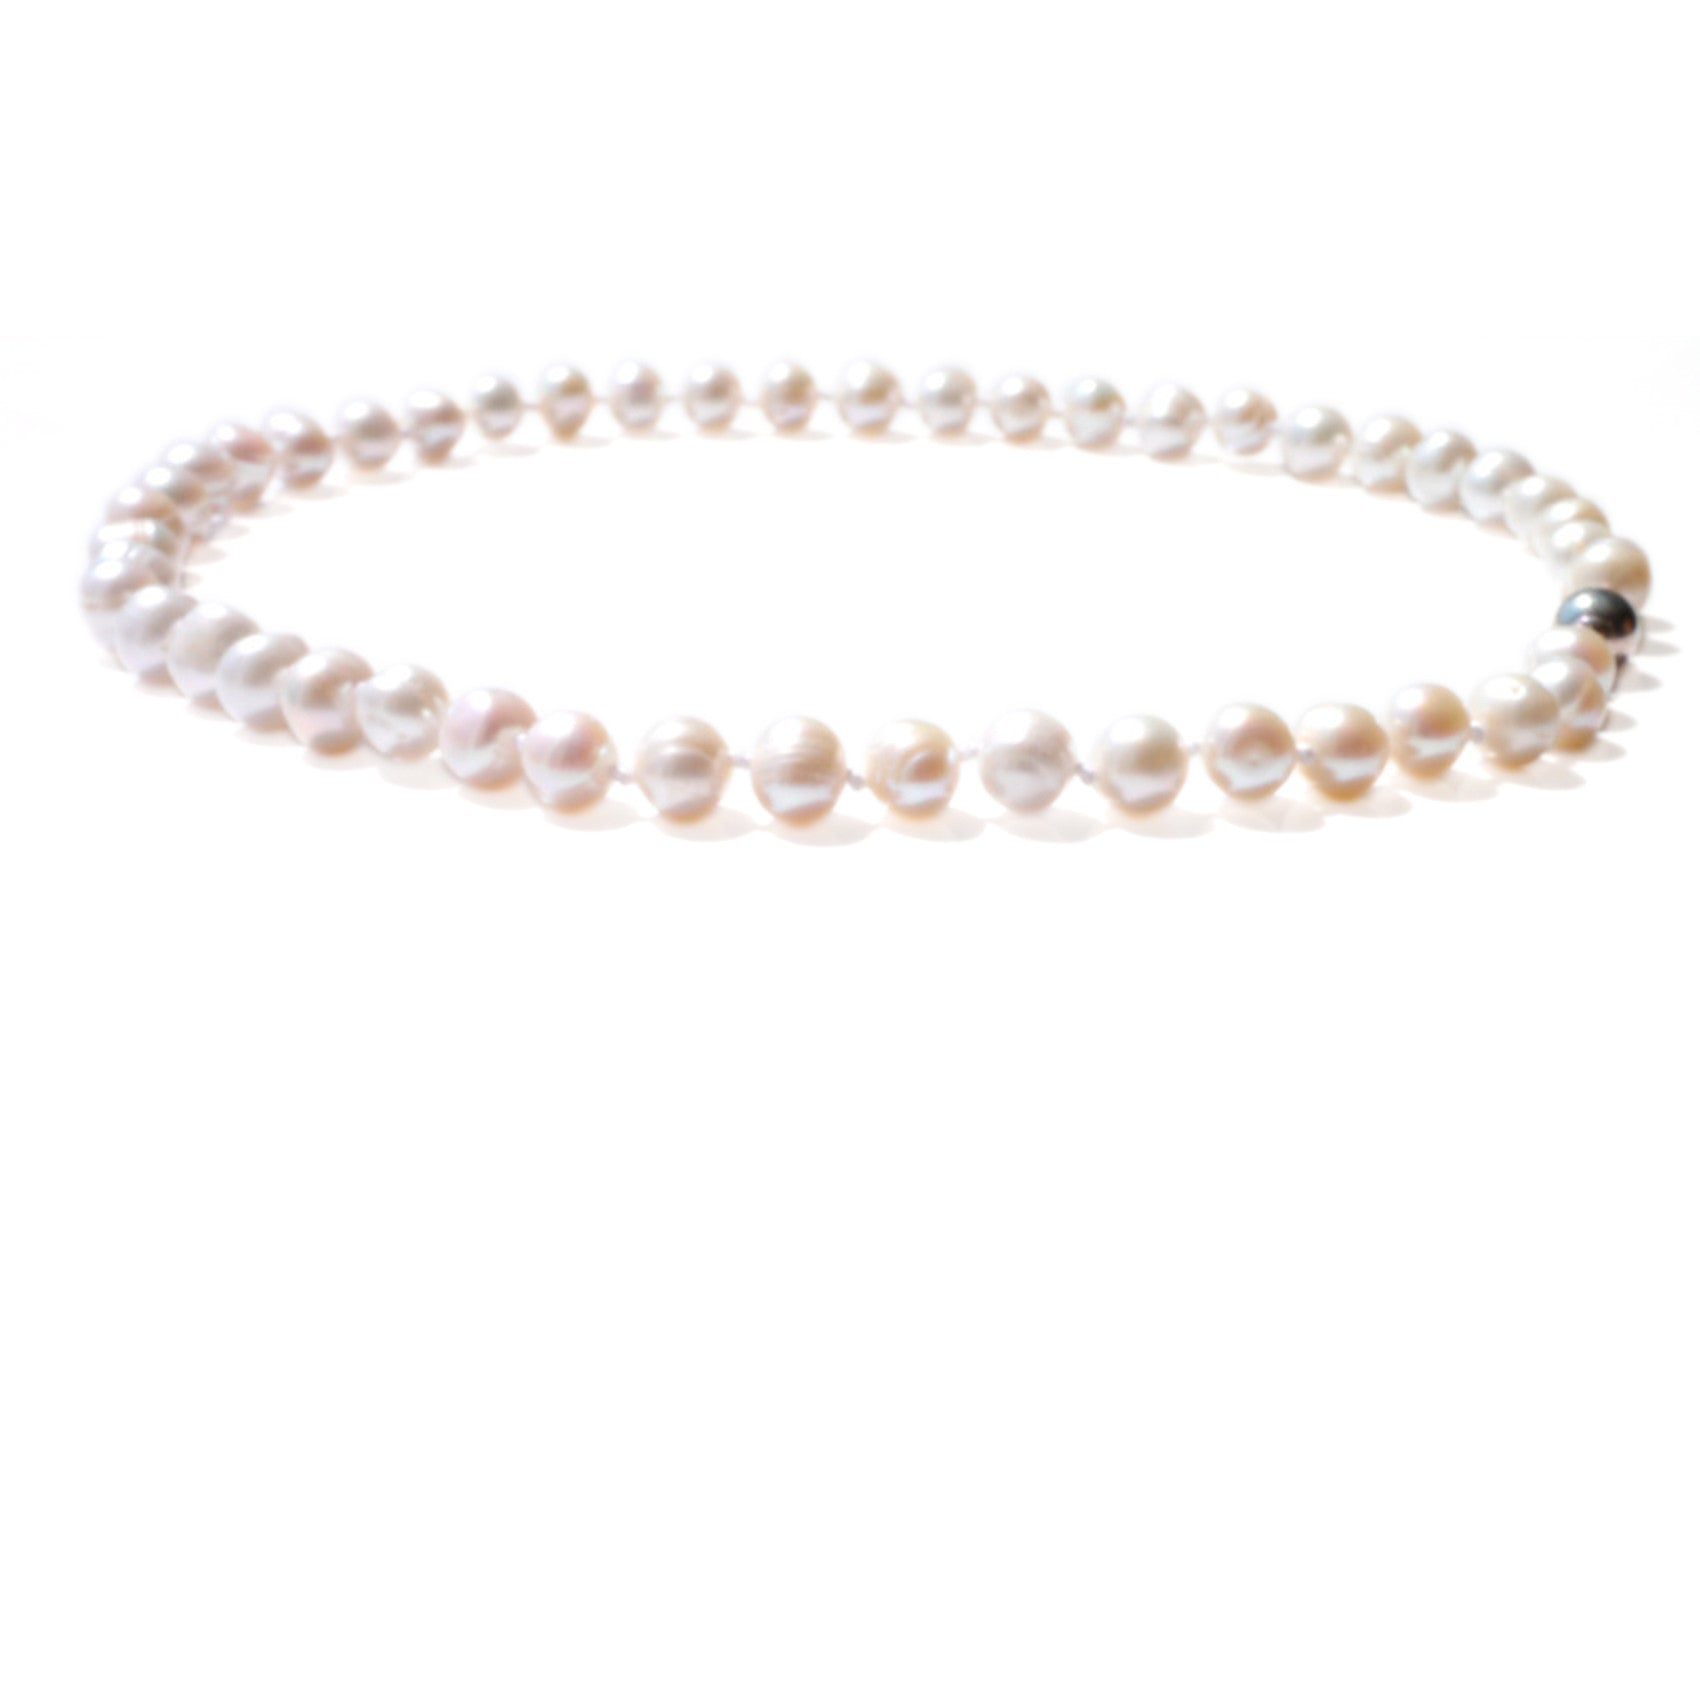 Pearls Girls: Lustrously Little Pearl Necklace (Satin White)